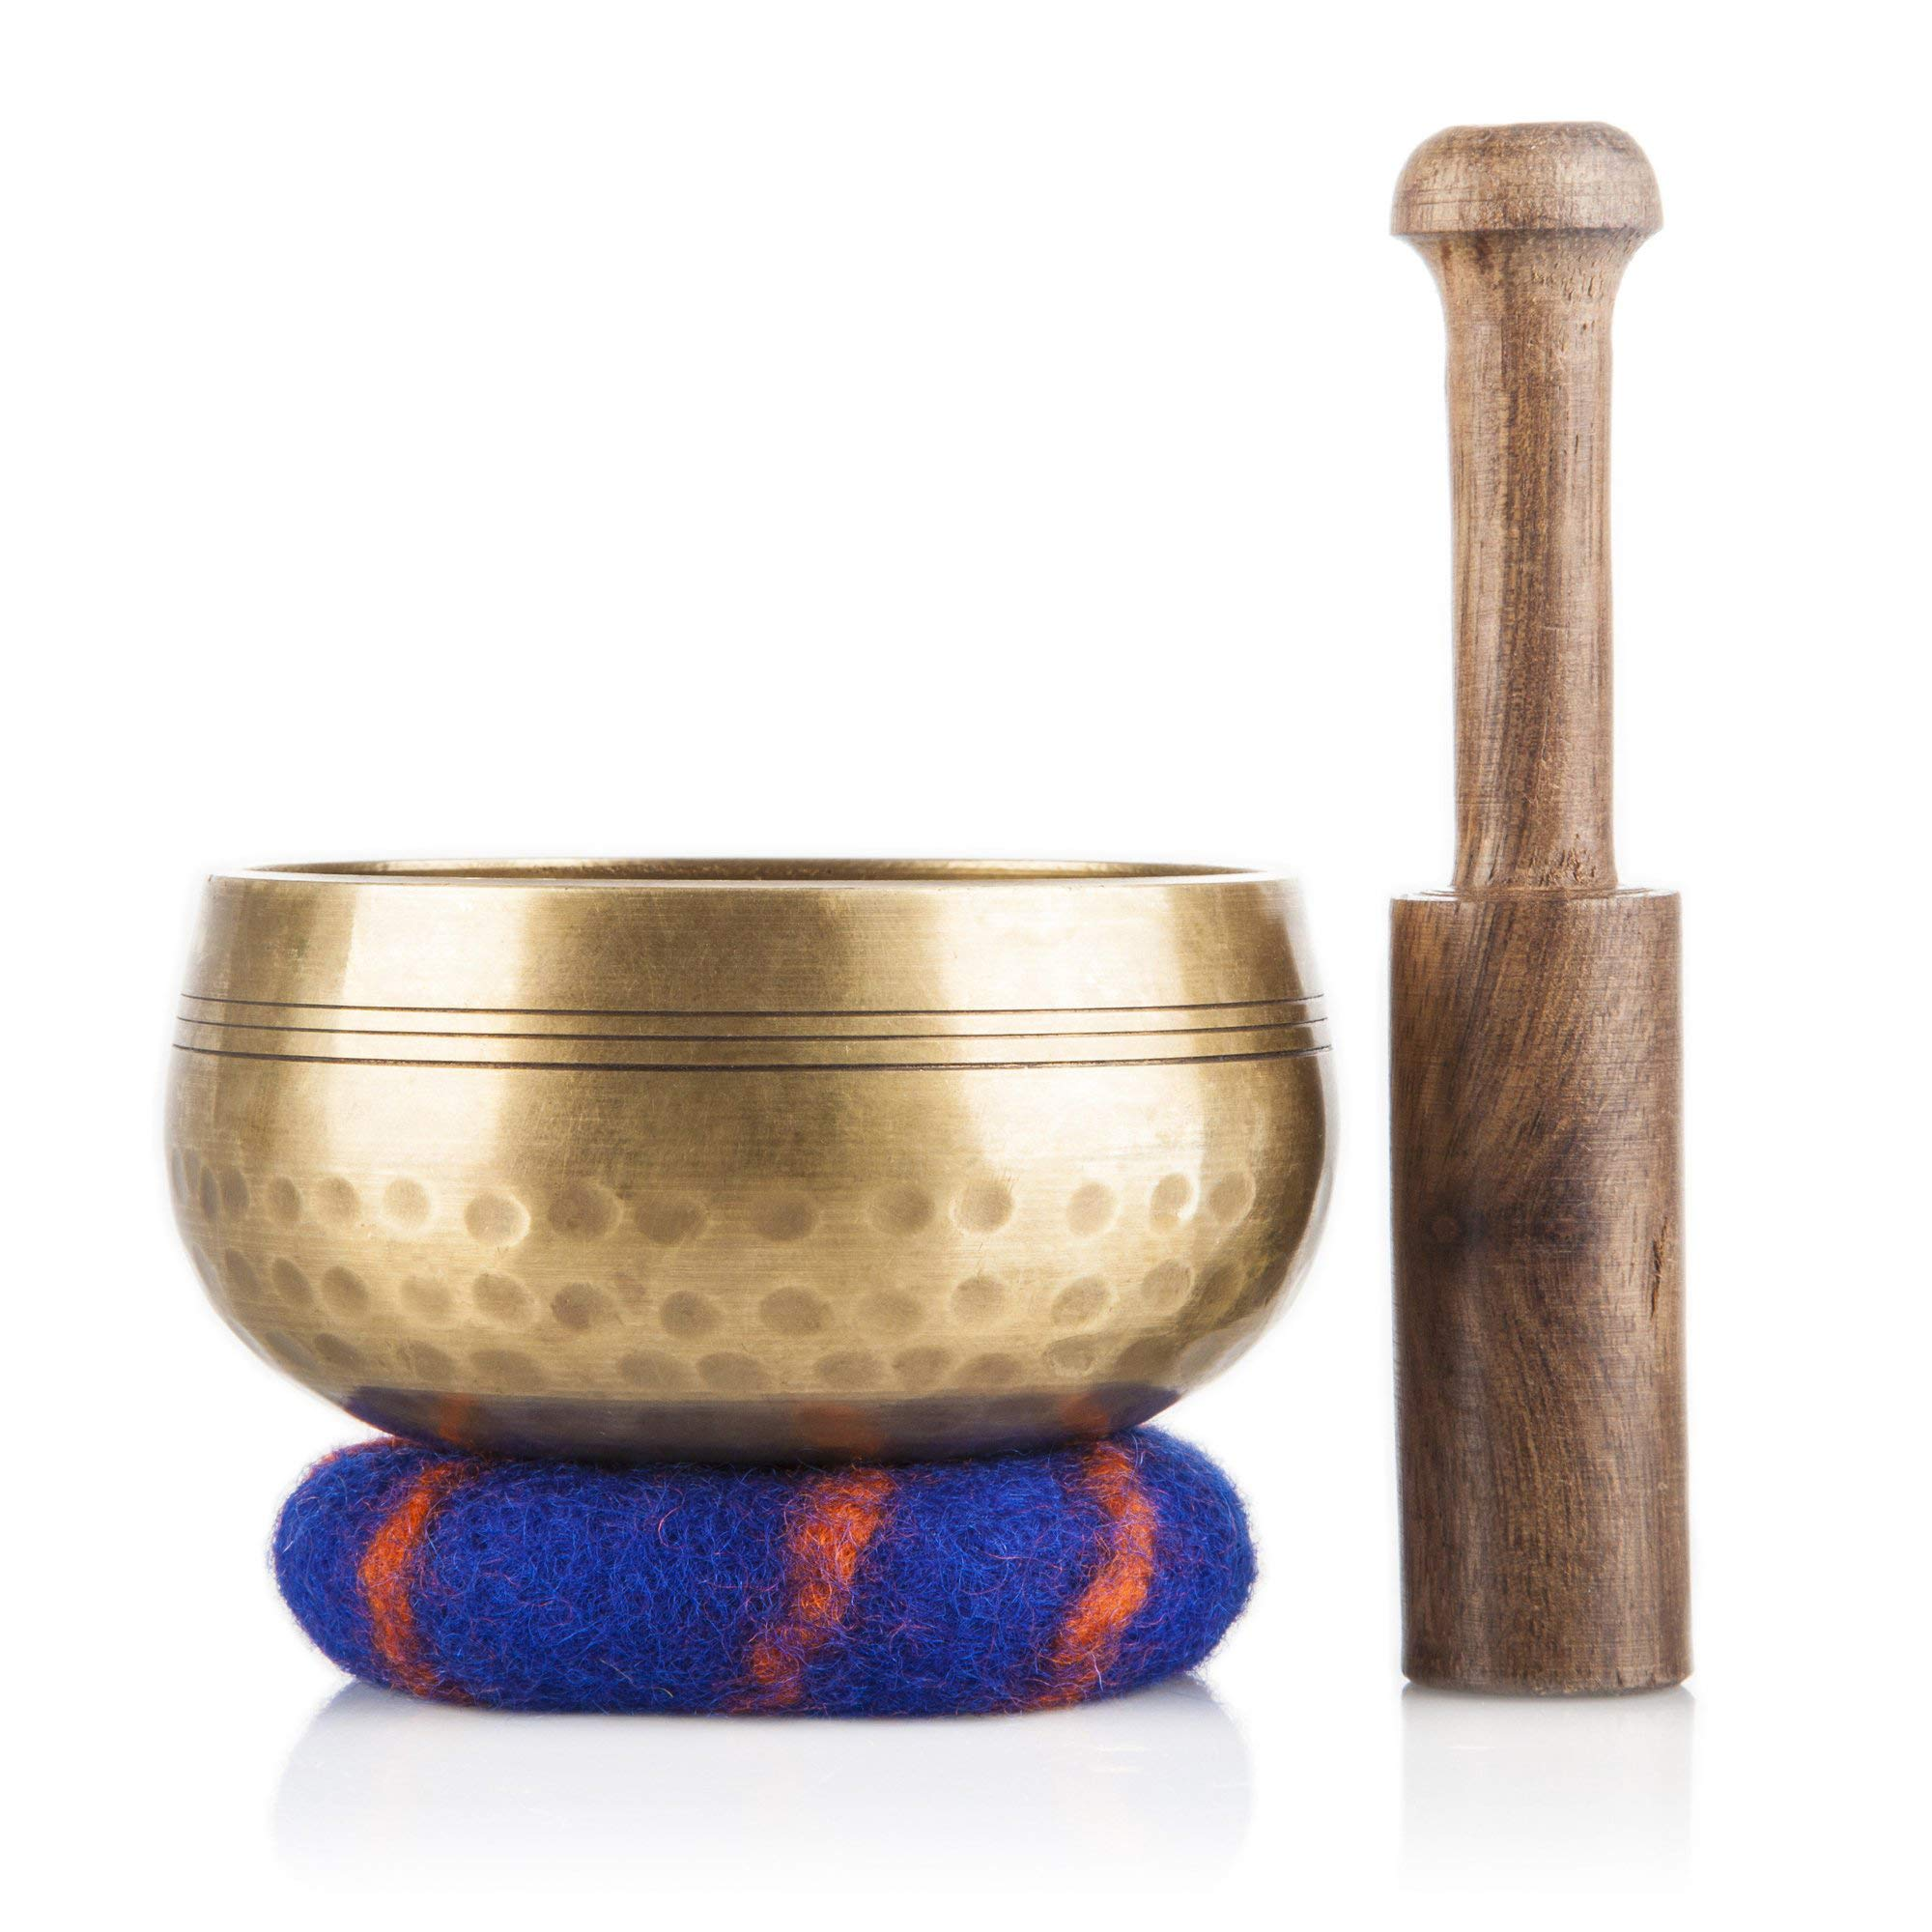 Tibetan Singing Bowl Set - Meditation Sound Bowl Handcrafted in Nepal for Healing and Mindfulness by Ohm Store